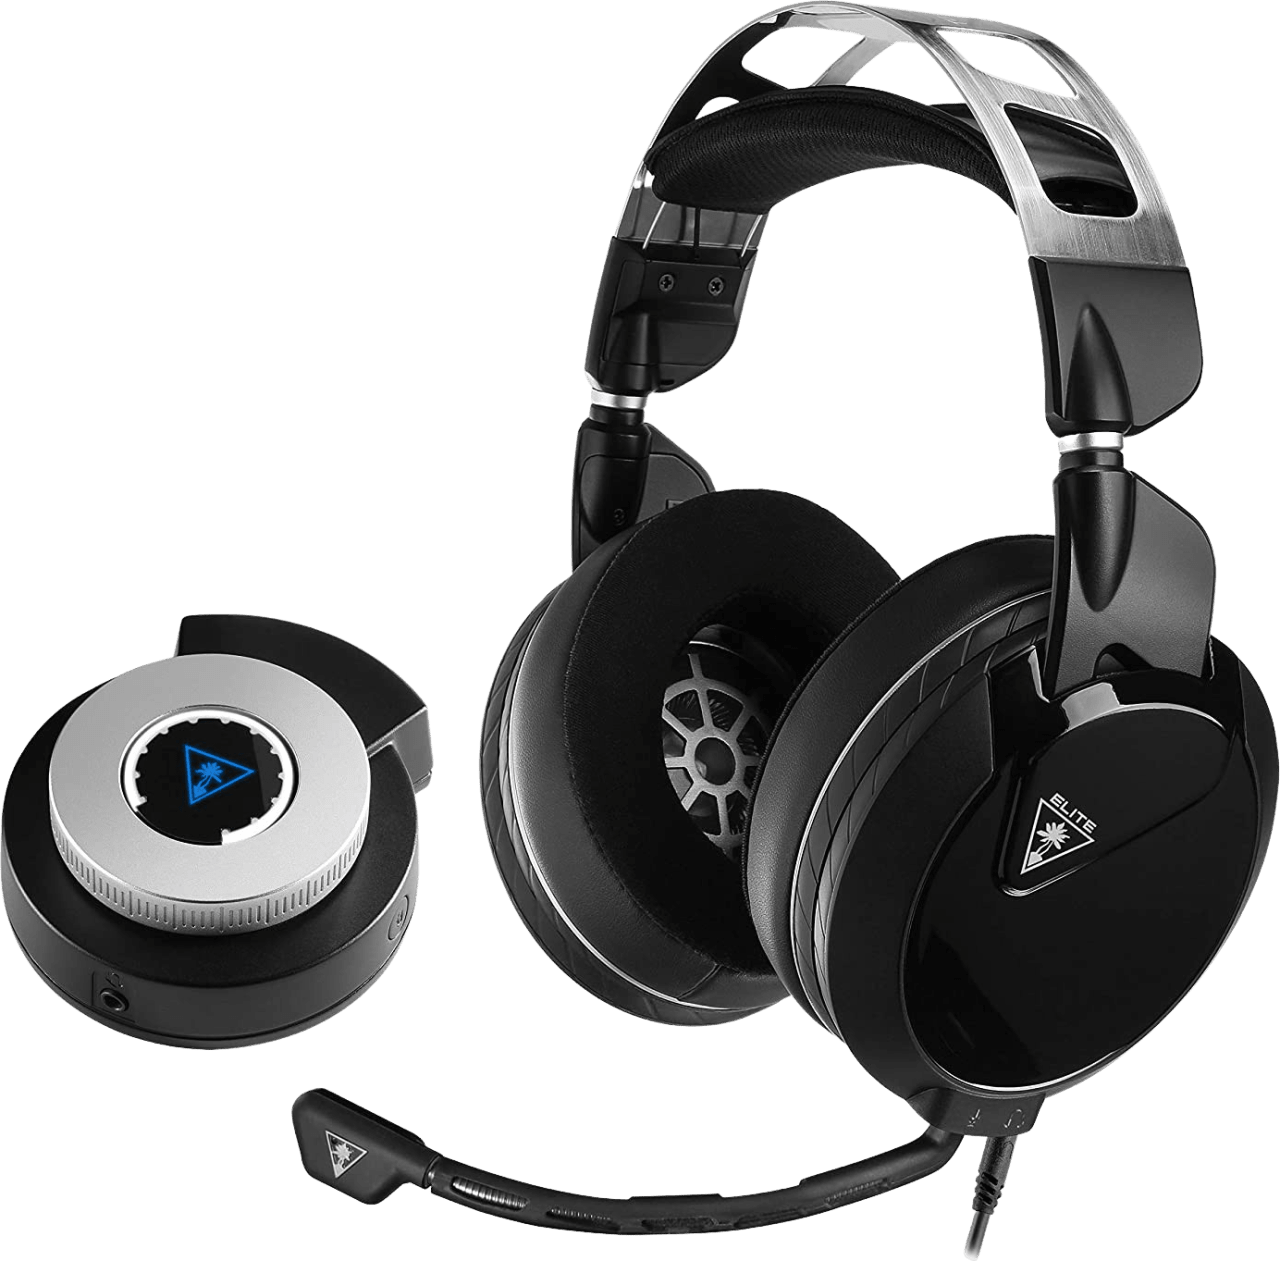 Black Turtle Beach Elite Pro 2 + SuperAmp (Playstation) Over-ear Gaming Headphones.1